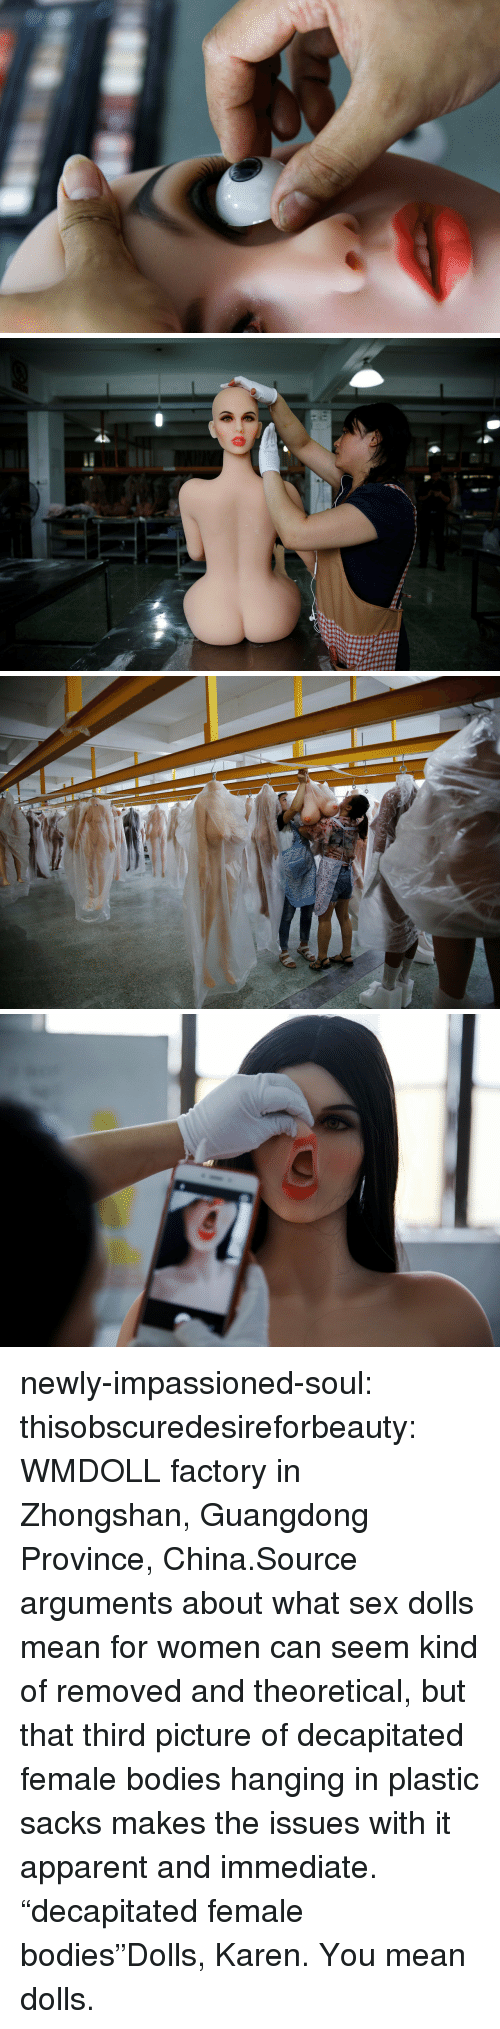 "Bodies , News, and Sex: newly-impassioned-soul:  thisobscuredesireforbeauty: WMDOLL factory in Zhongshan, Guangdong Province, China.Source arguments about what sex dolls mean for women can seem kind of removed and theoretical, but that third picture of decapitated female bodies hanging in plastic sacks makes the issues with it apparent and immediate.   ""decapitated female bodies""Dolls, Karen. You mean dolls."